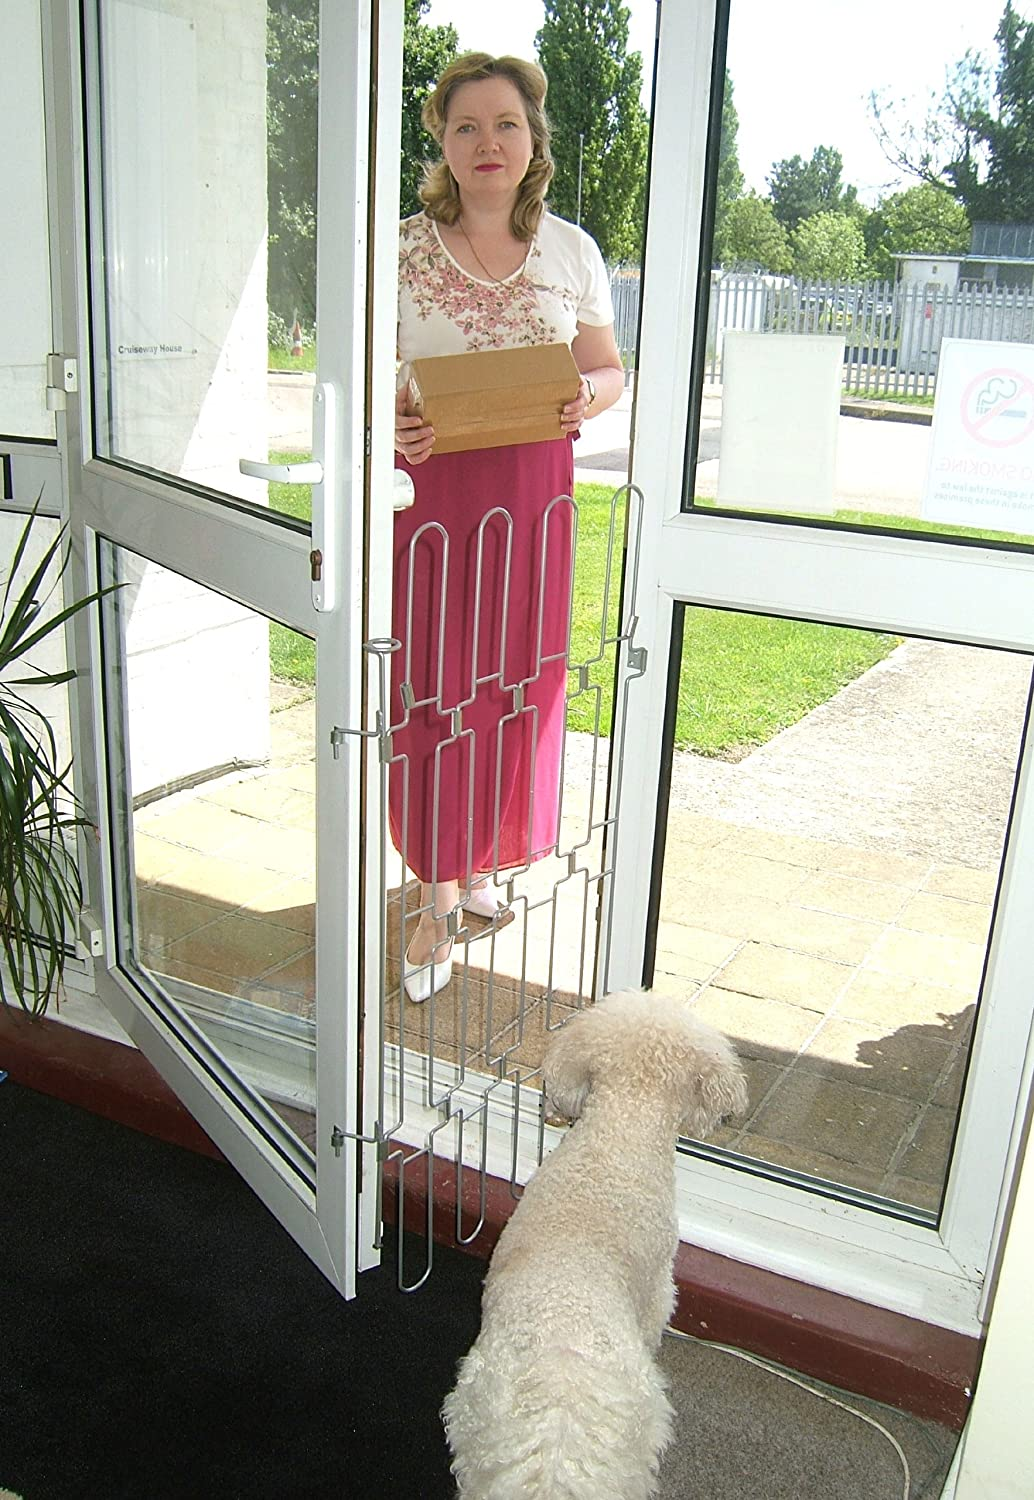 button push safety dp with release baby stairway or for ivation amazon outdoor locking in indoor gates use com doors system doorway door dogs gate timed mesh retractable